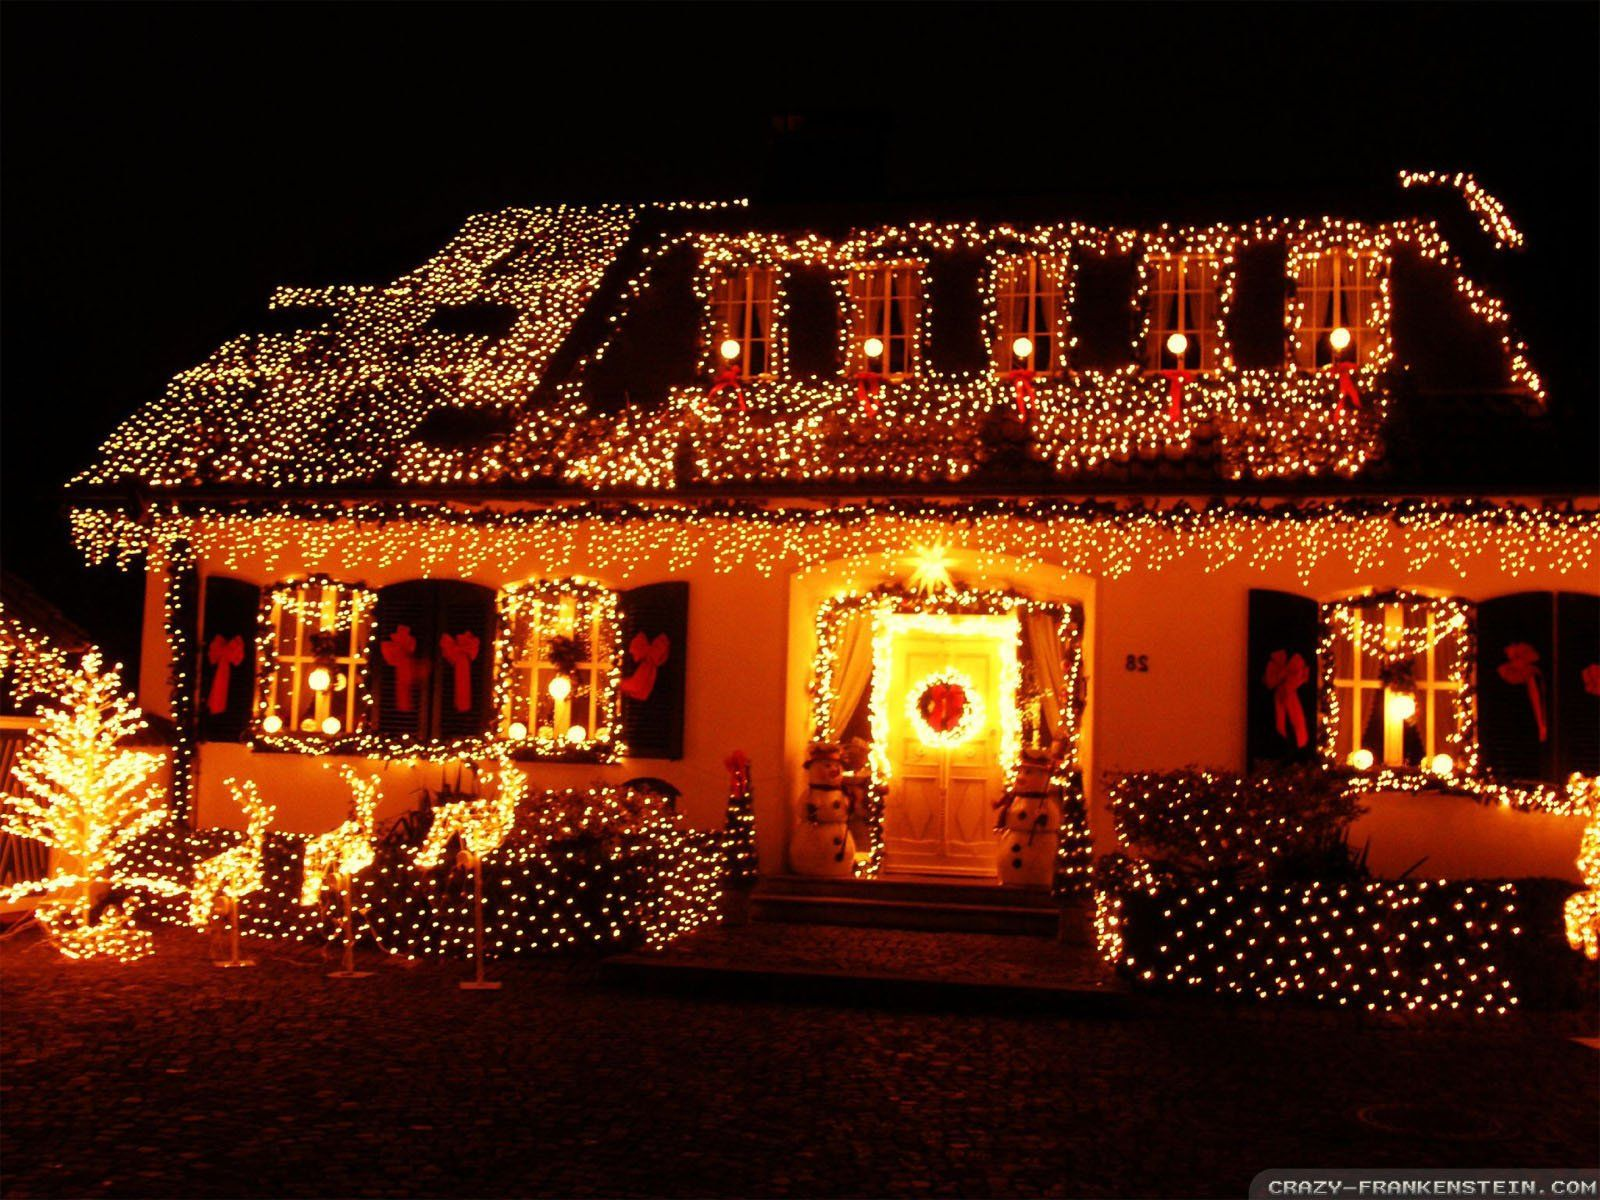 Outdoor Christmas Lights Ideas Tips Home Lighting Design Ideas Christmas Decorations For The Home Christmas House Lights Outdoor Christmas Lights